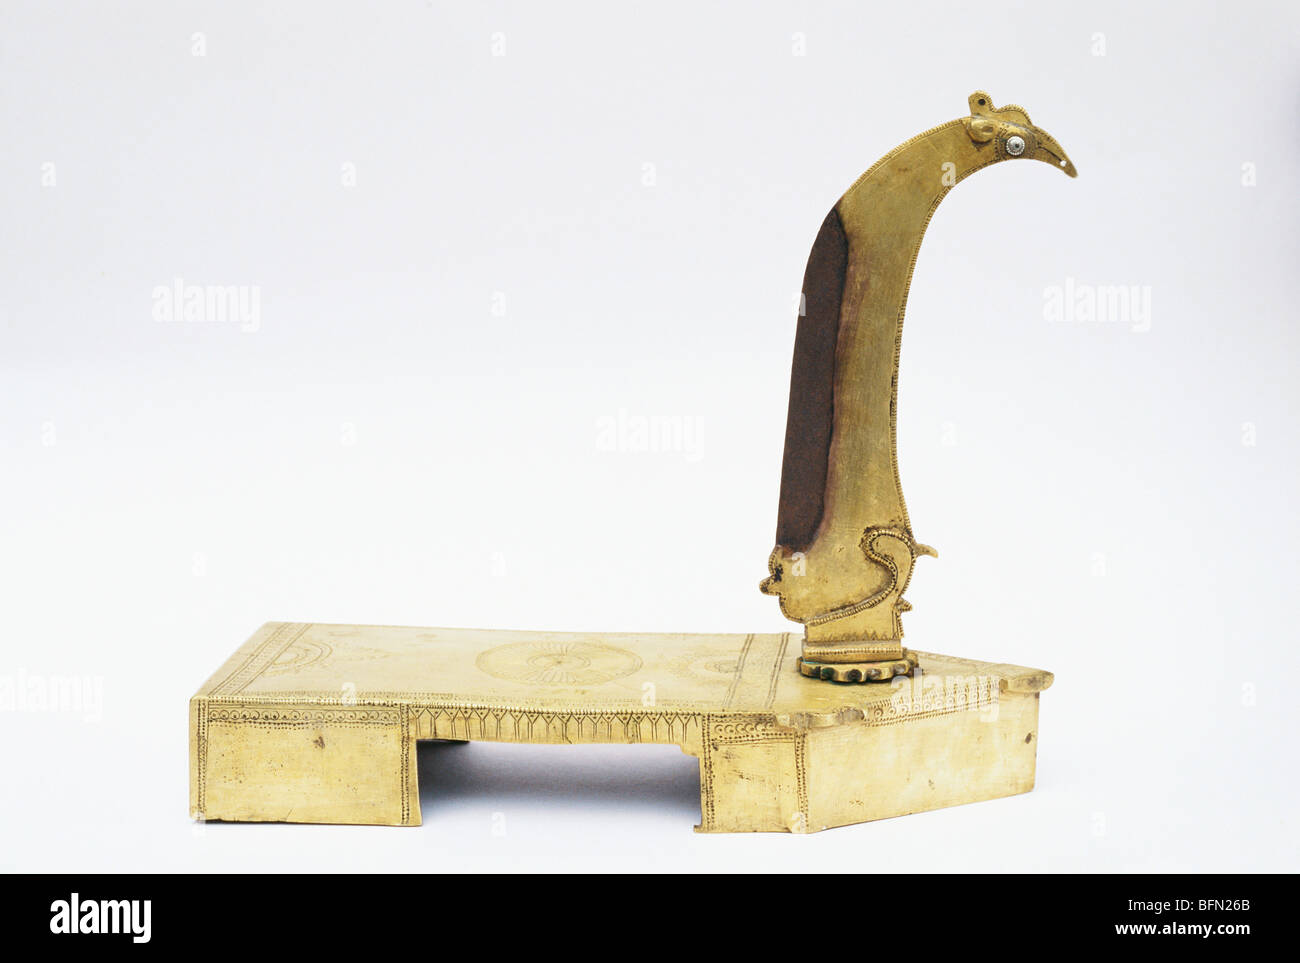 Maa 61302 Brass Vegetable Cutter 100 Years Old India Stock Photo